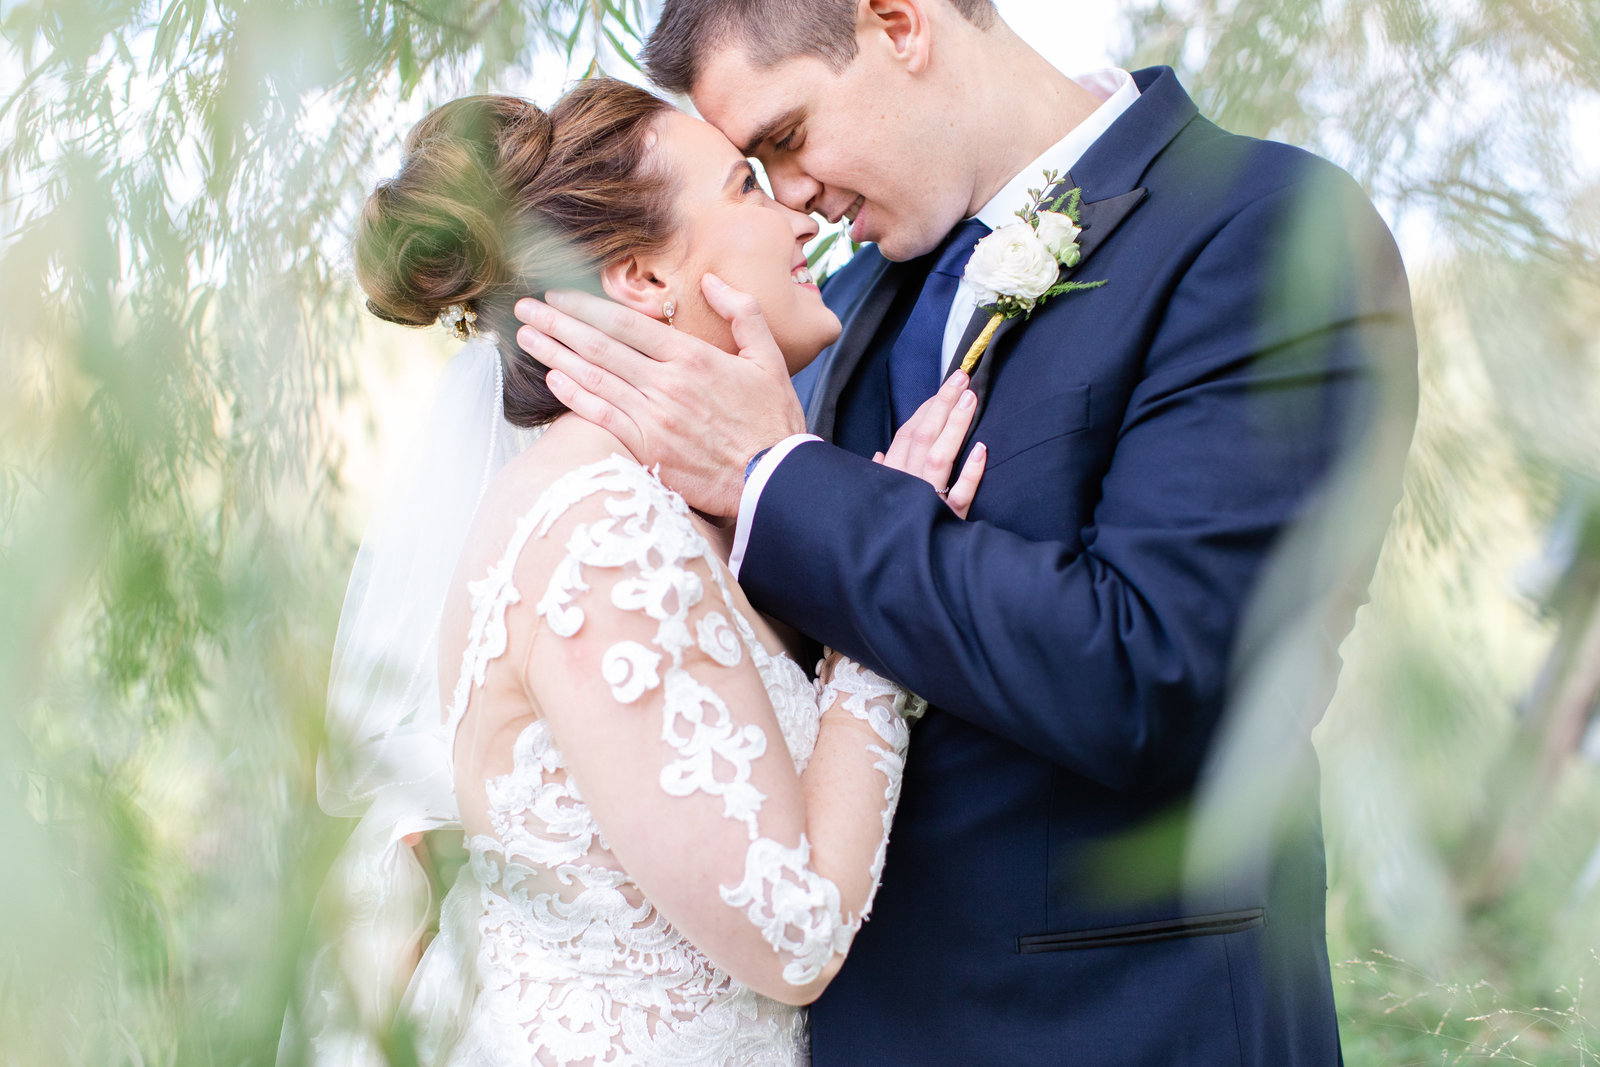 caiti-tim-wedding-lovewell-weddings-turning-stone-resort-307